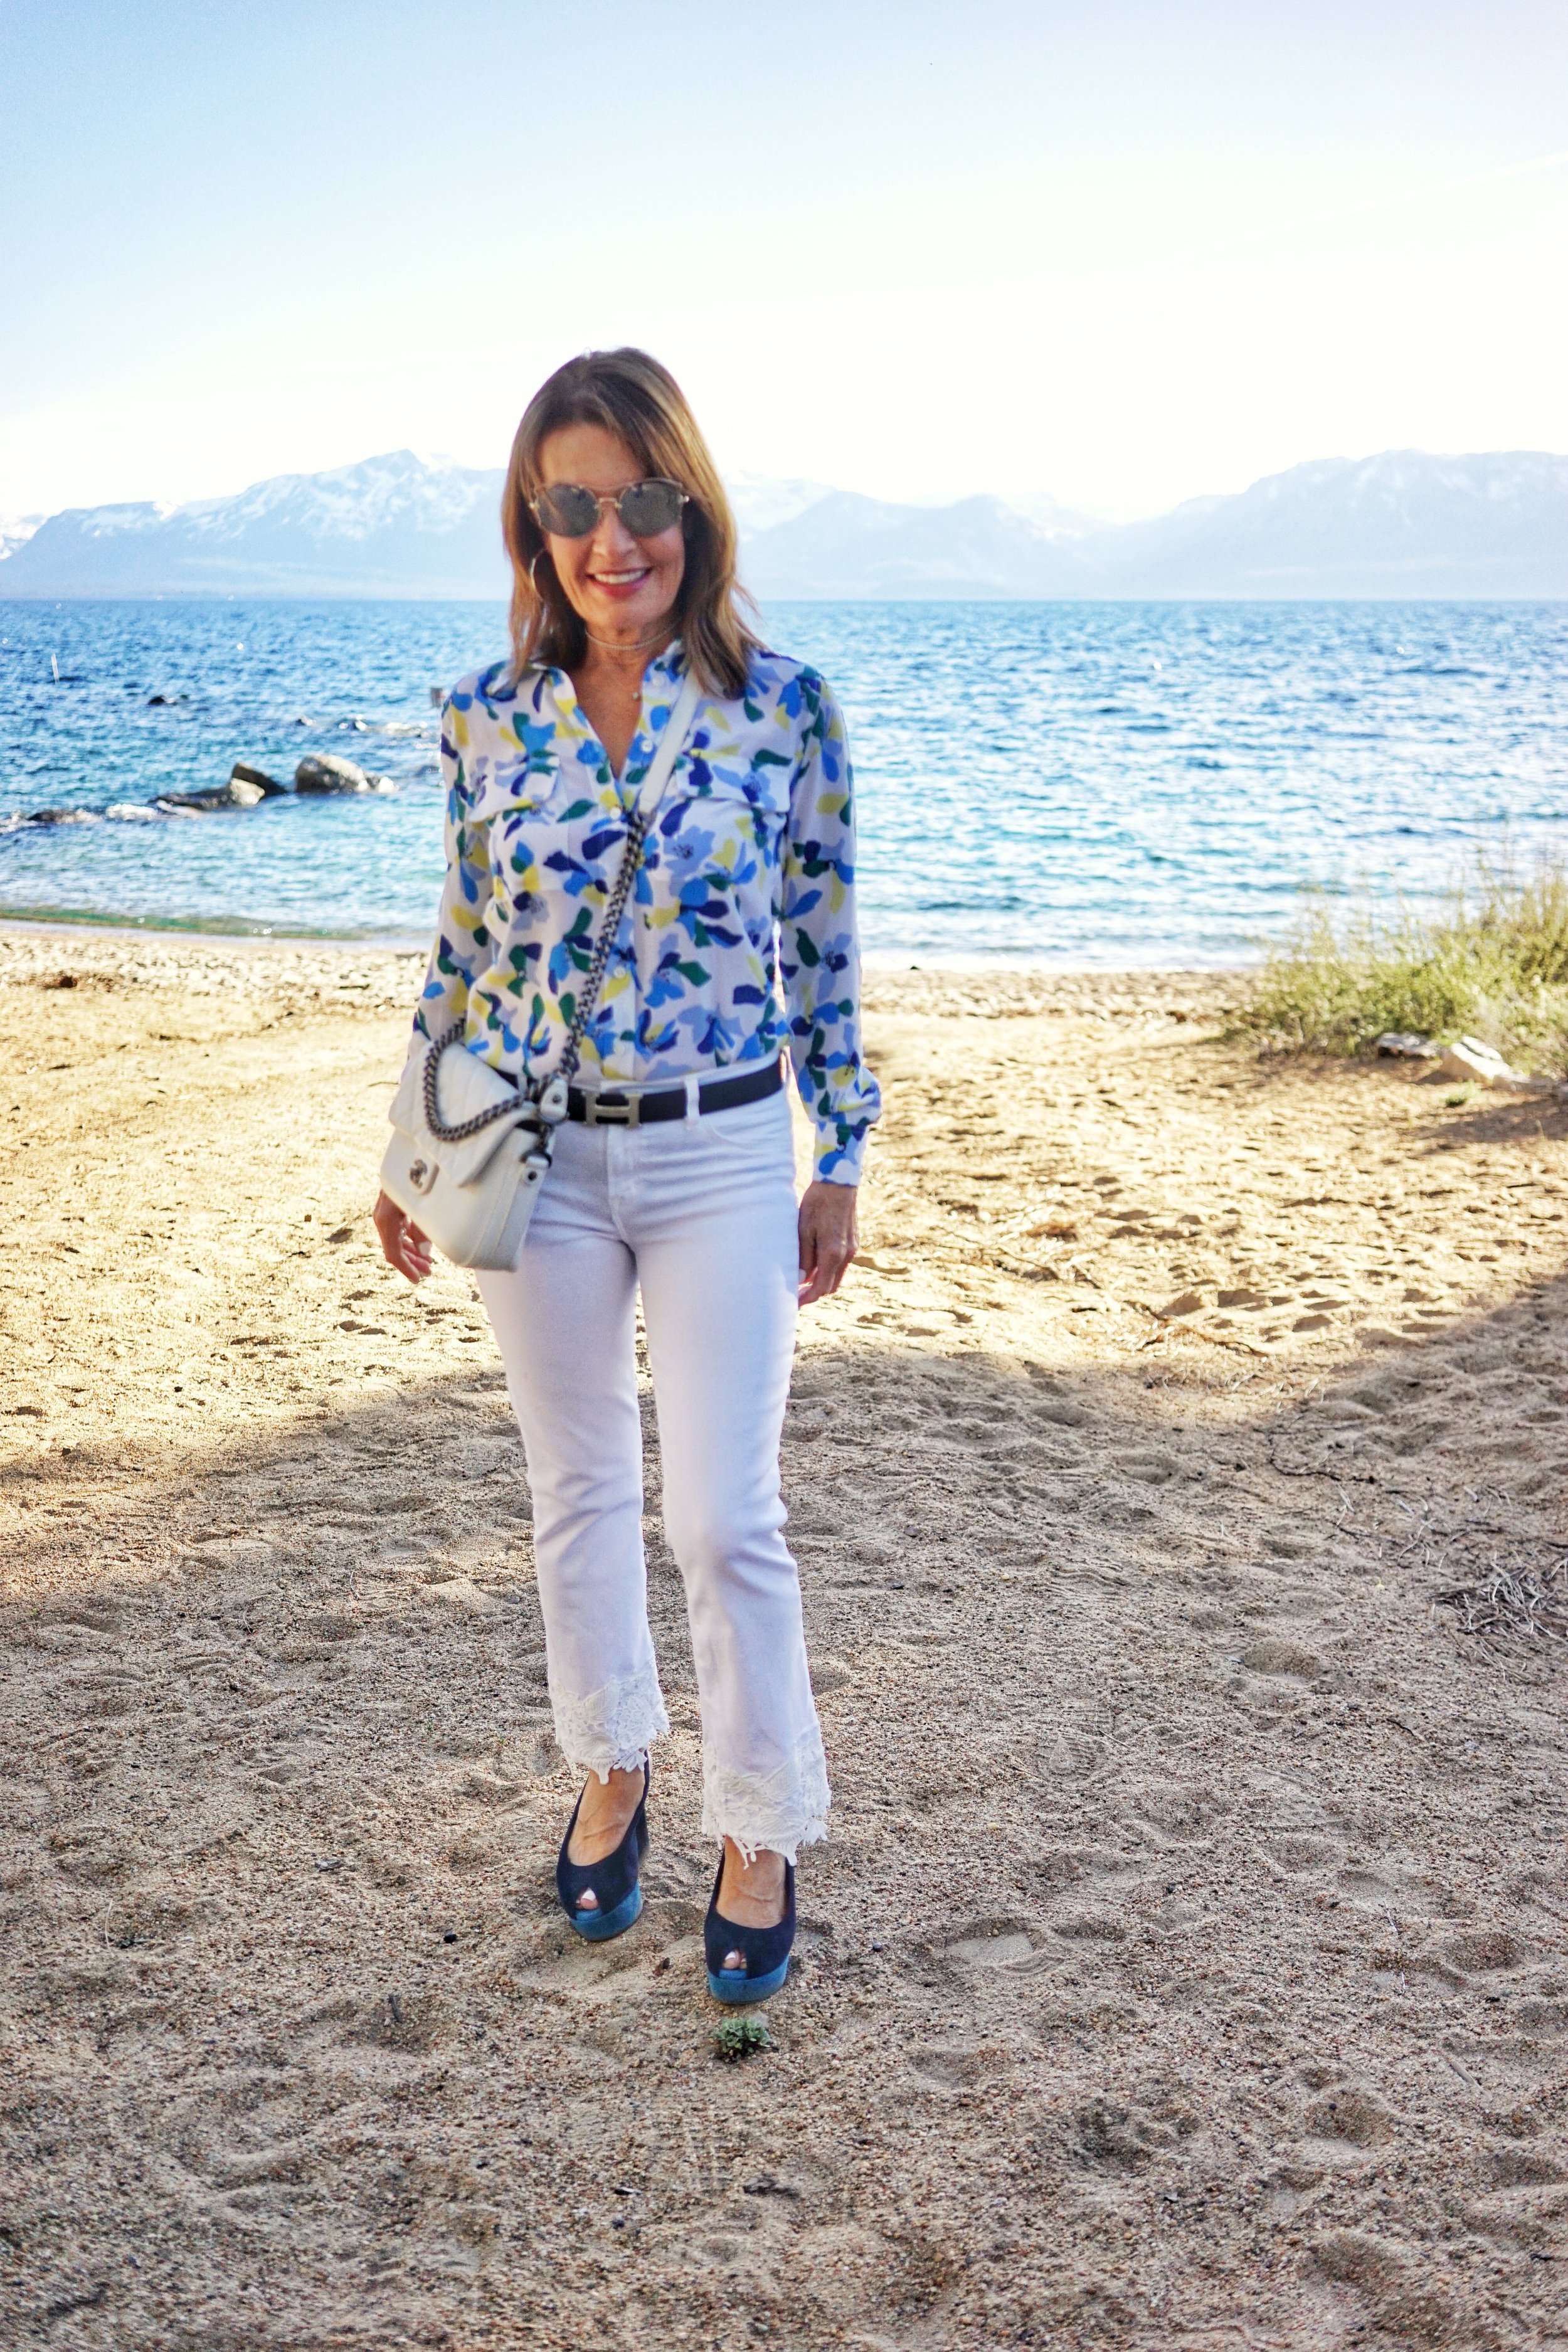 J Brand jeans   ,    Equipment blouse   ,    Robert Clergerie shoes   , Chanel handbag,    similar for less here    and    here   , Miu Miu shades, Hermes Belt,   John Hardy hoops   .